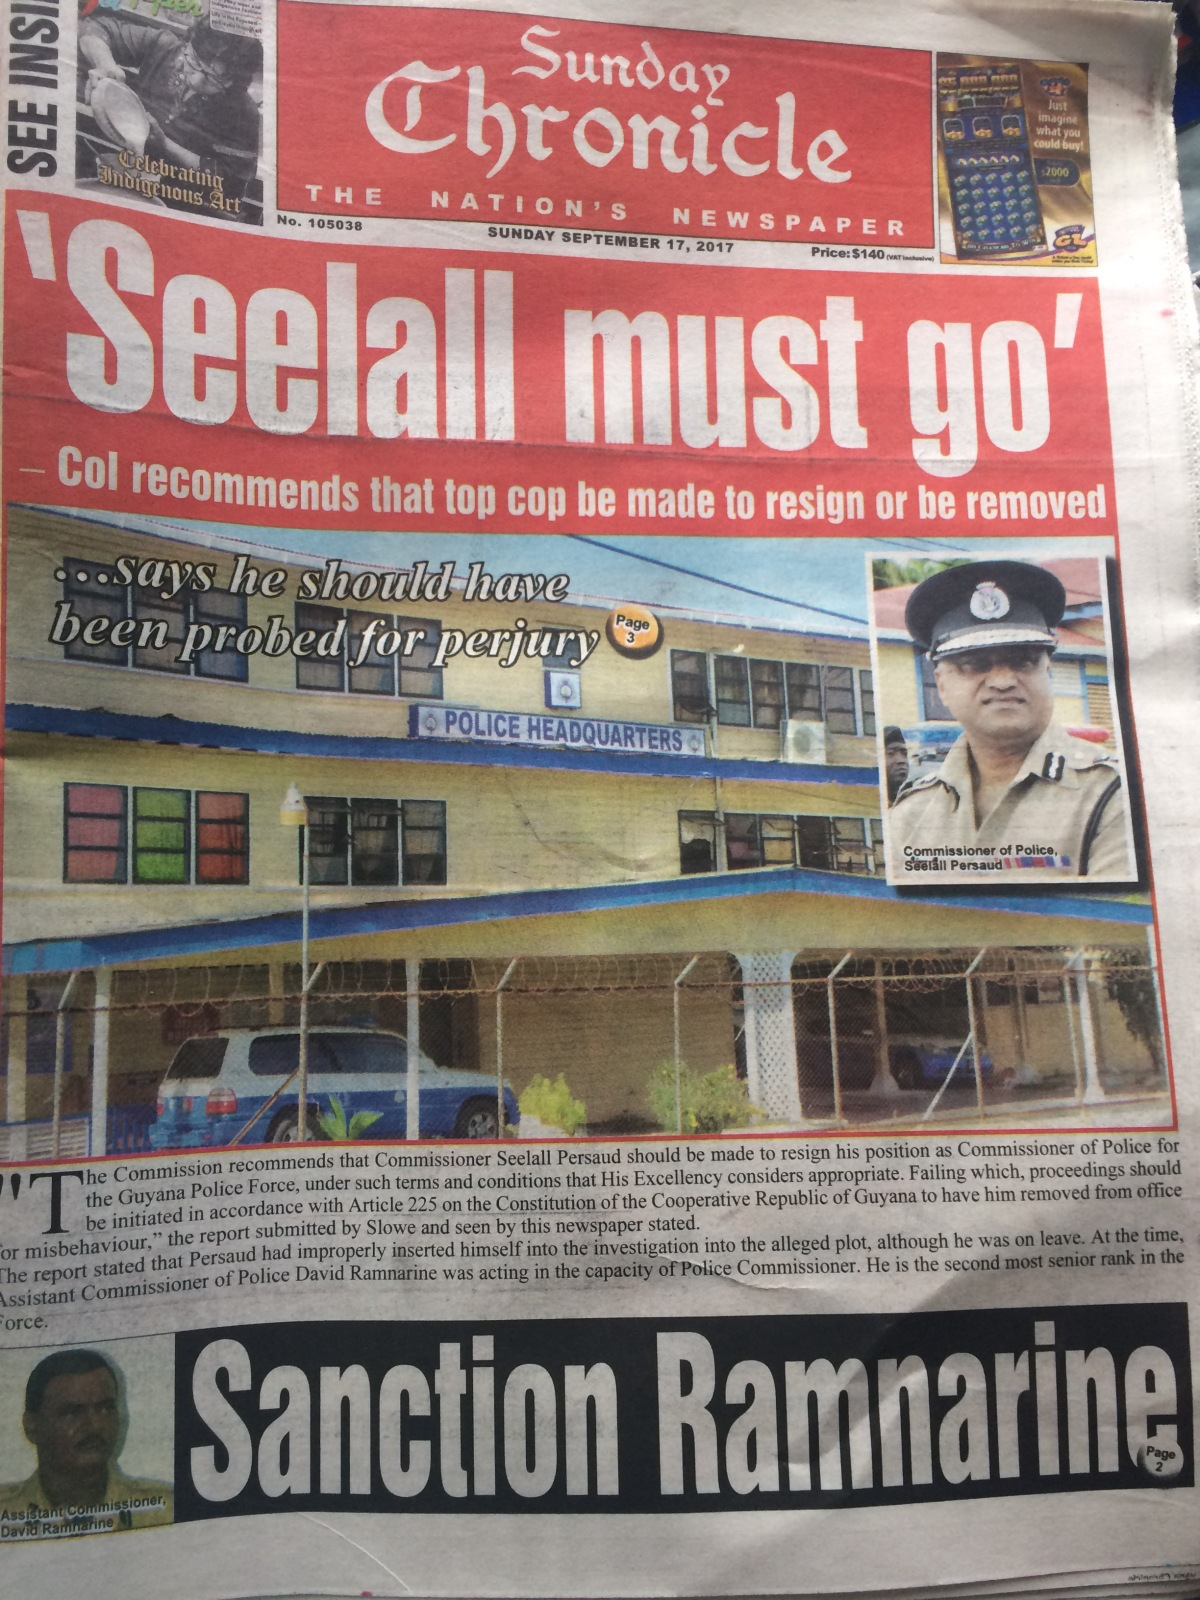 the purge of the guyana police force begins any second now